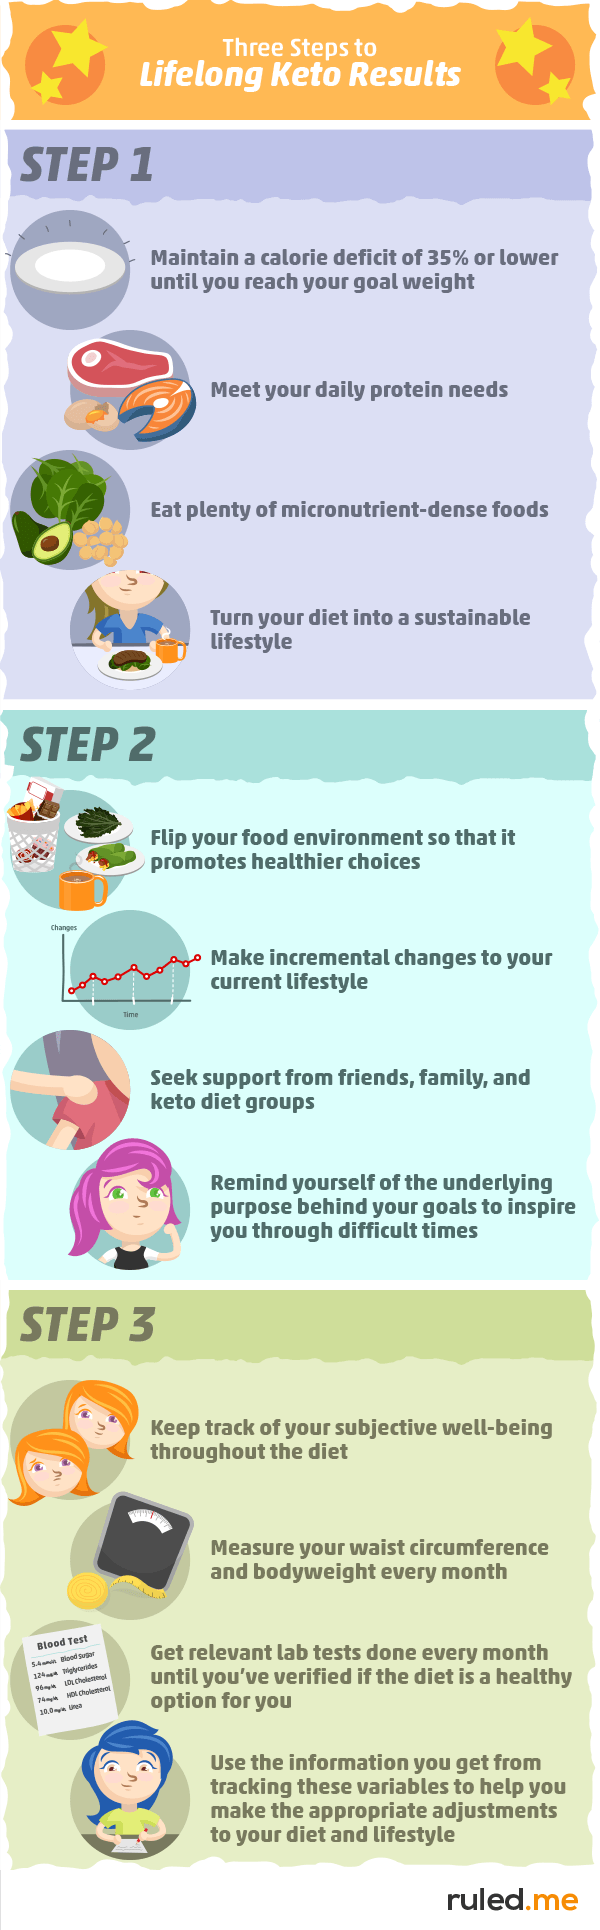 3 Steps to Lifelong Keto Results